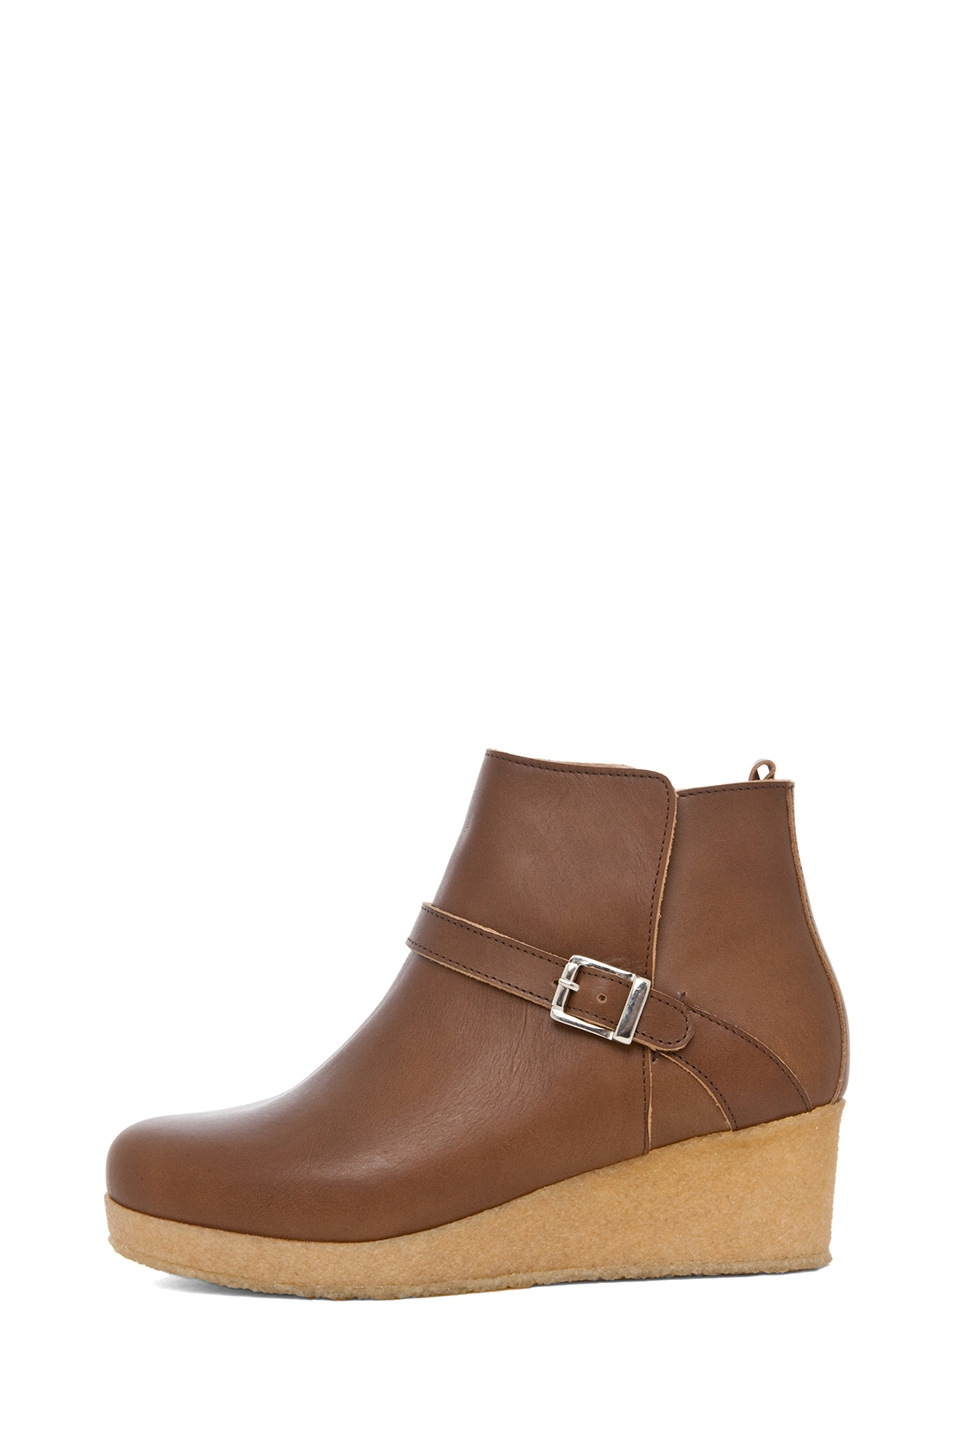 Image 1 of A.P.C. Boots Basse in Noisette